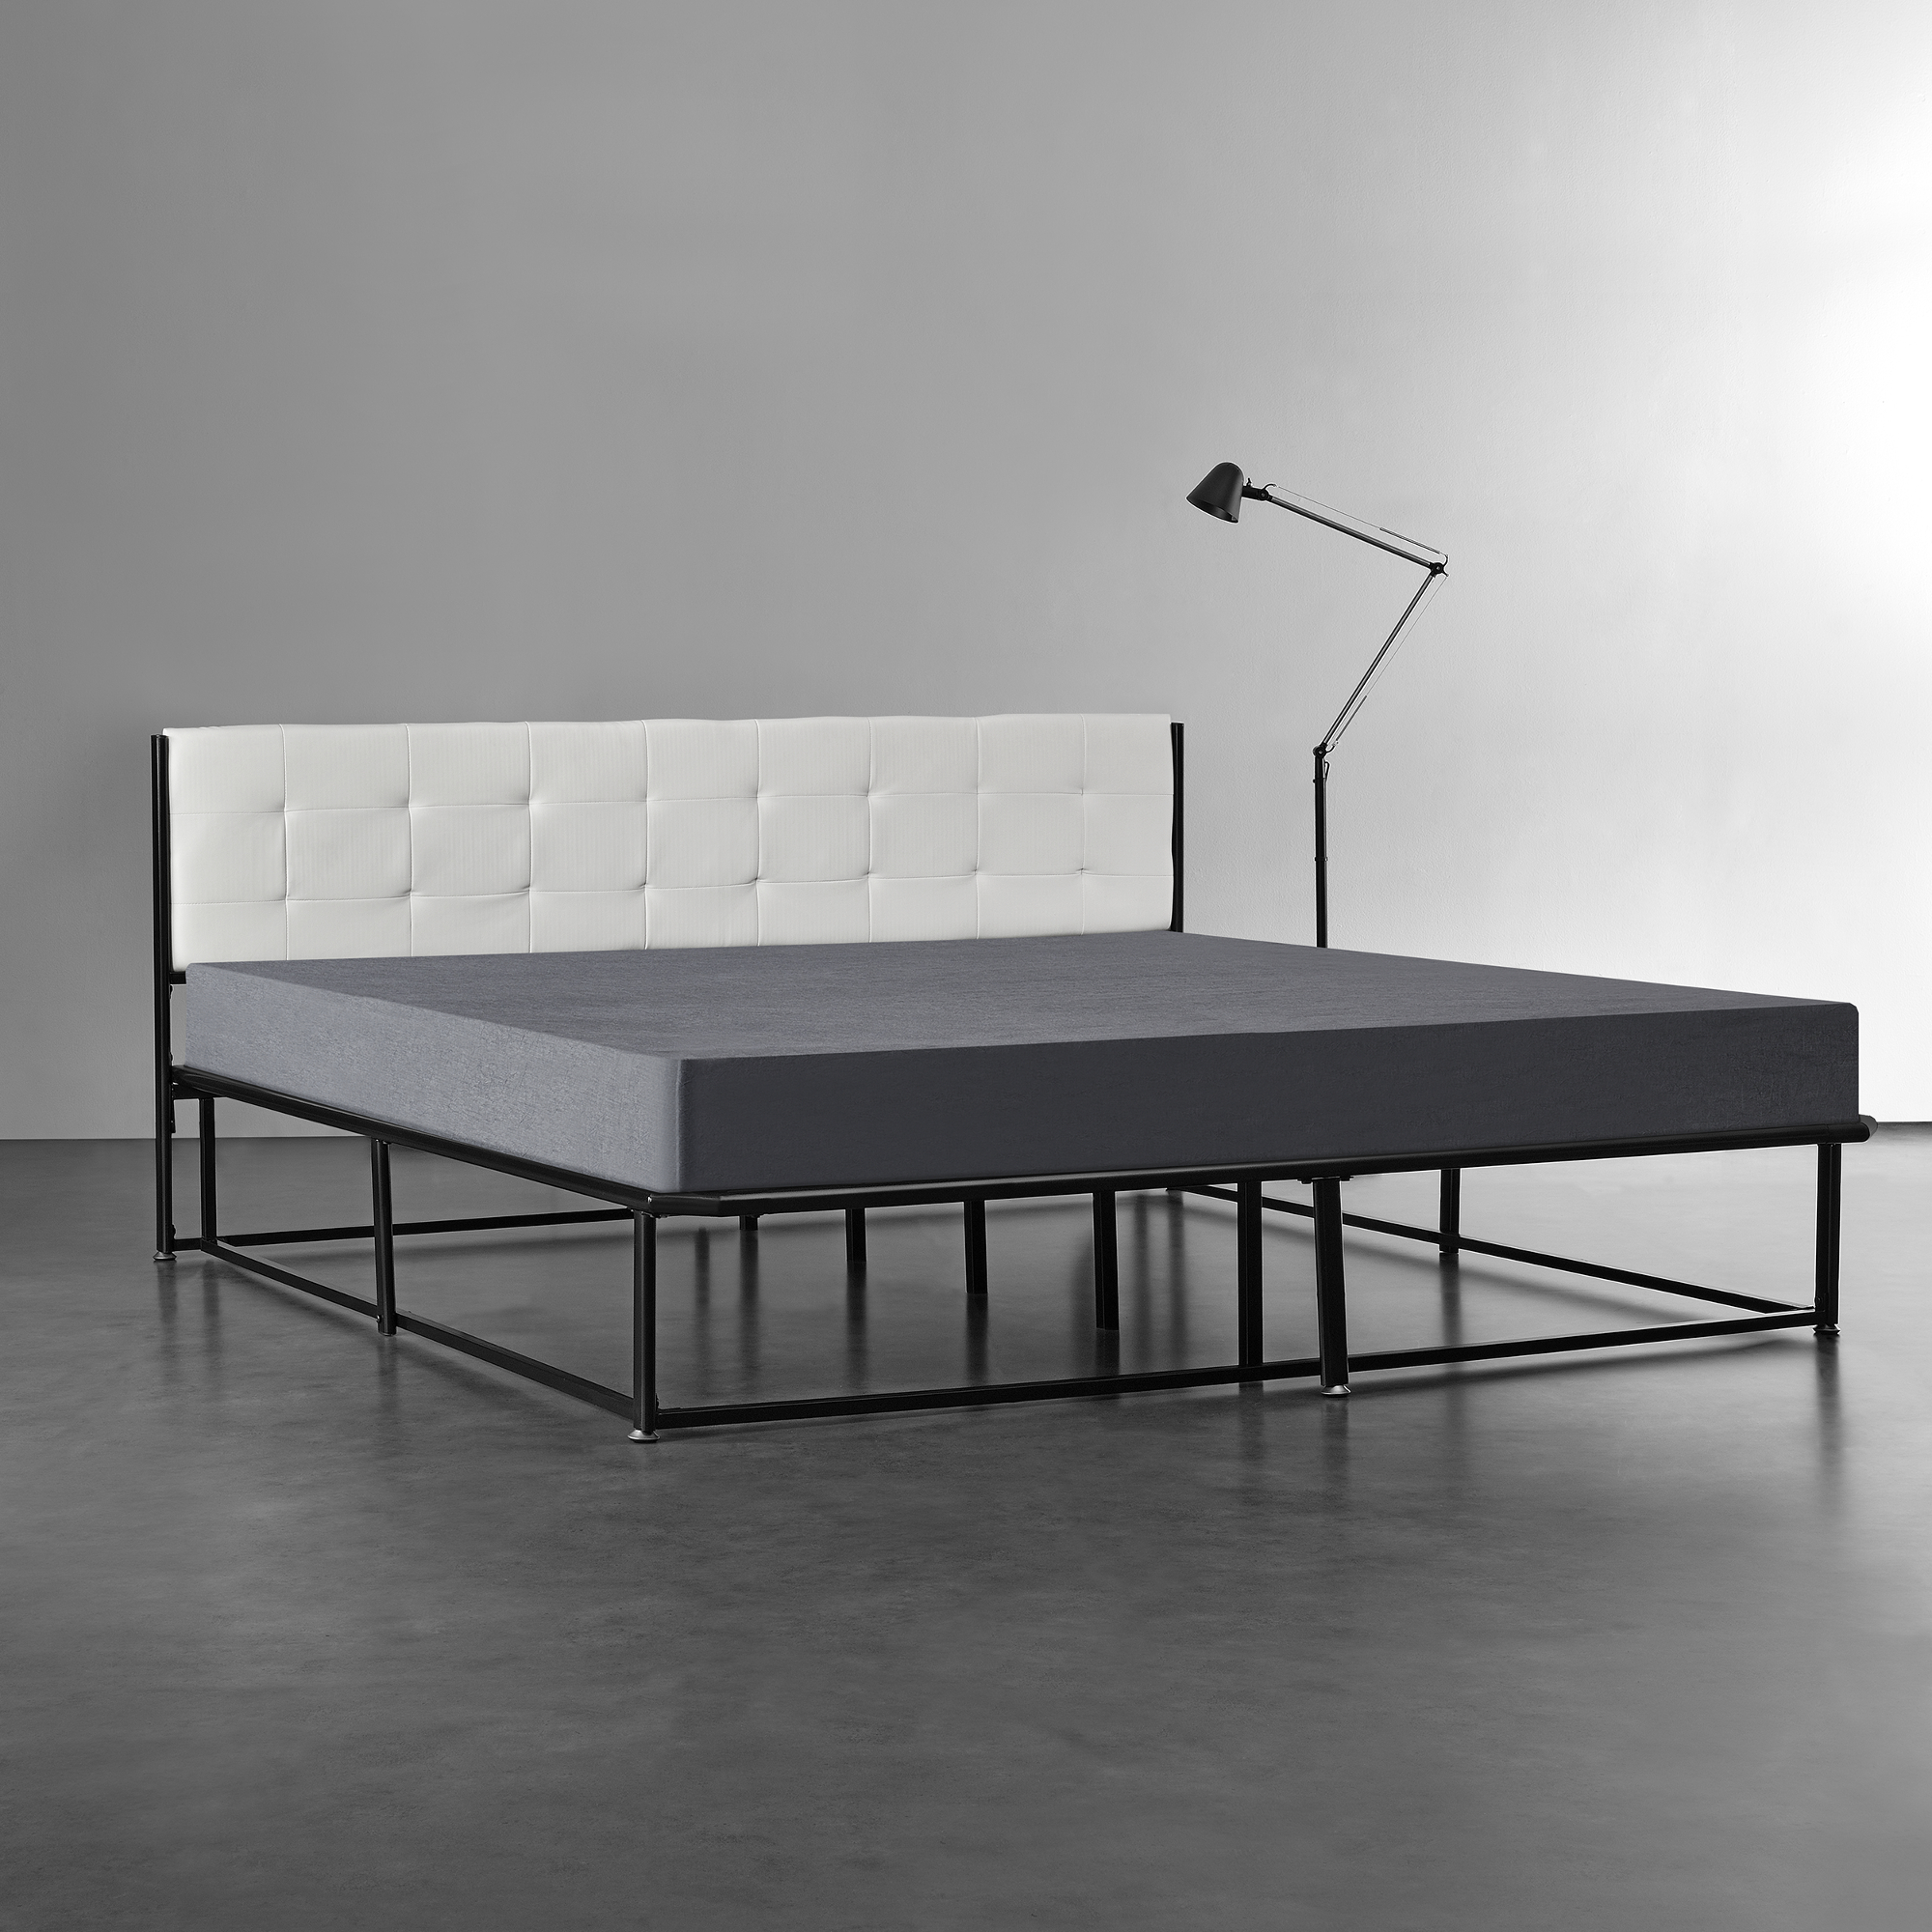 metallbett 140 180 x 200 schwarz grau matratze bett kunstleder textil ebay. Black Bedroom Furniture Sets. Home Design Ideas